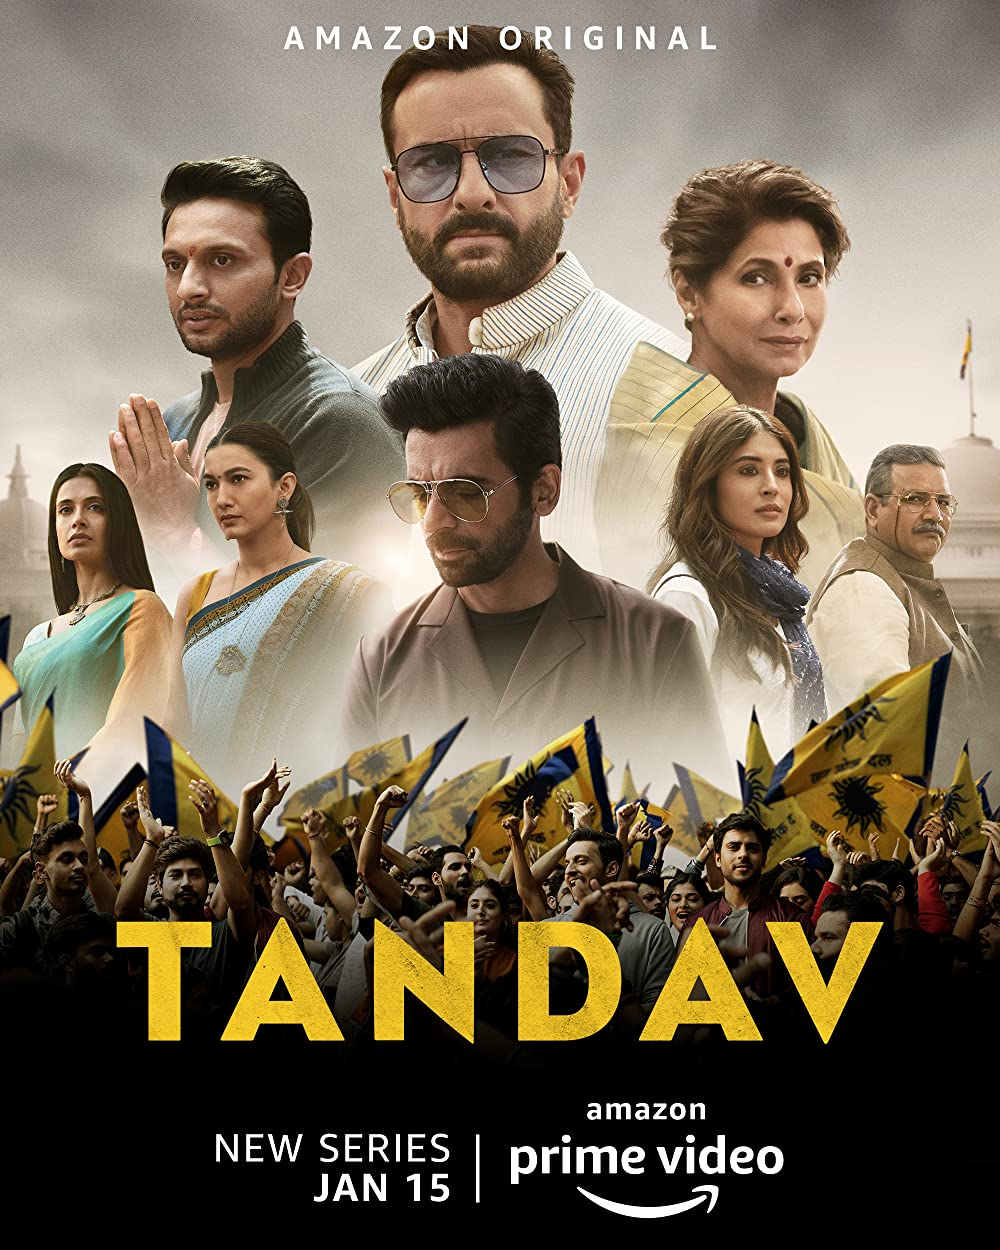 Download Tandav S01 2021 Hindi Amazon Original Complete Web Series 480p HDRip 960MB